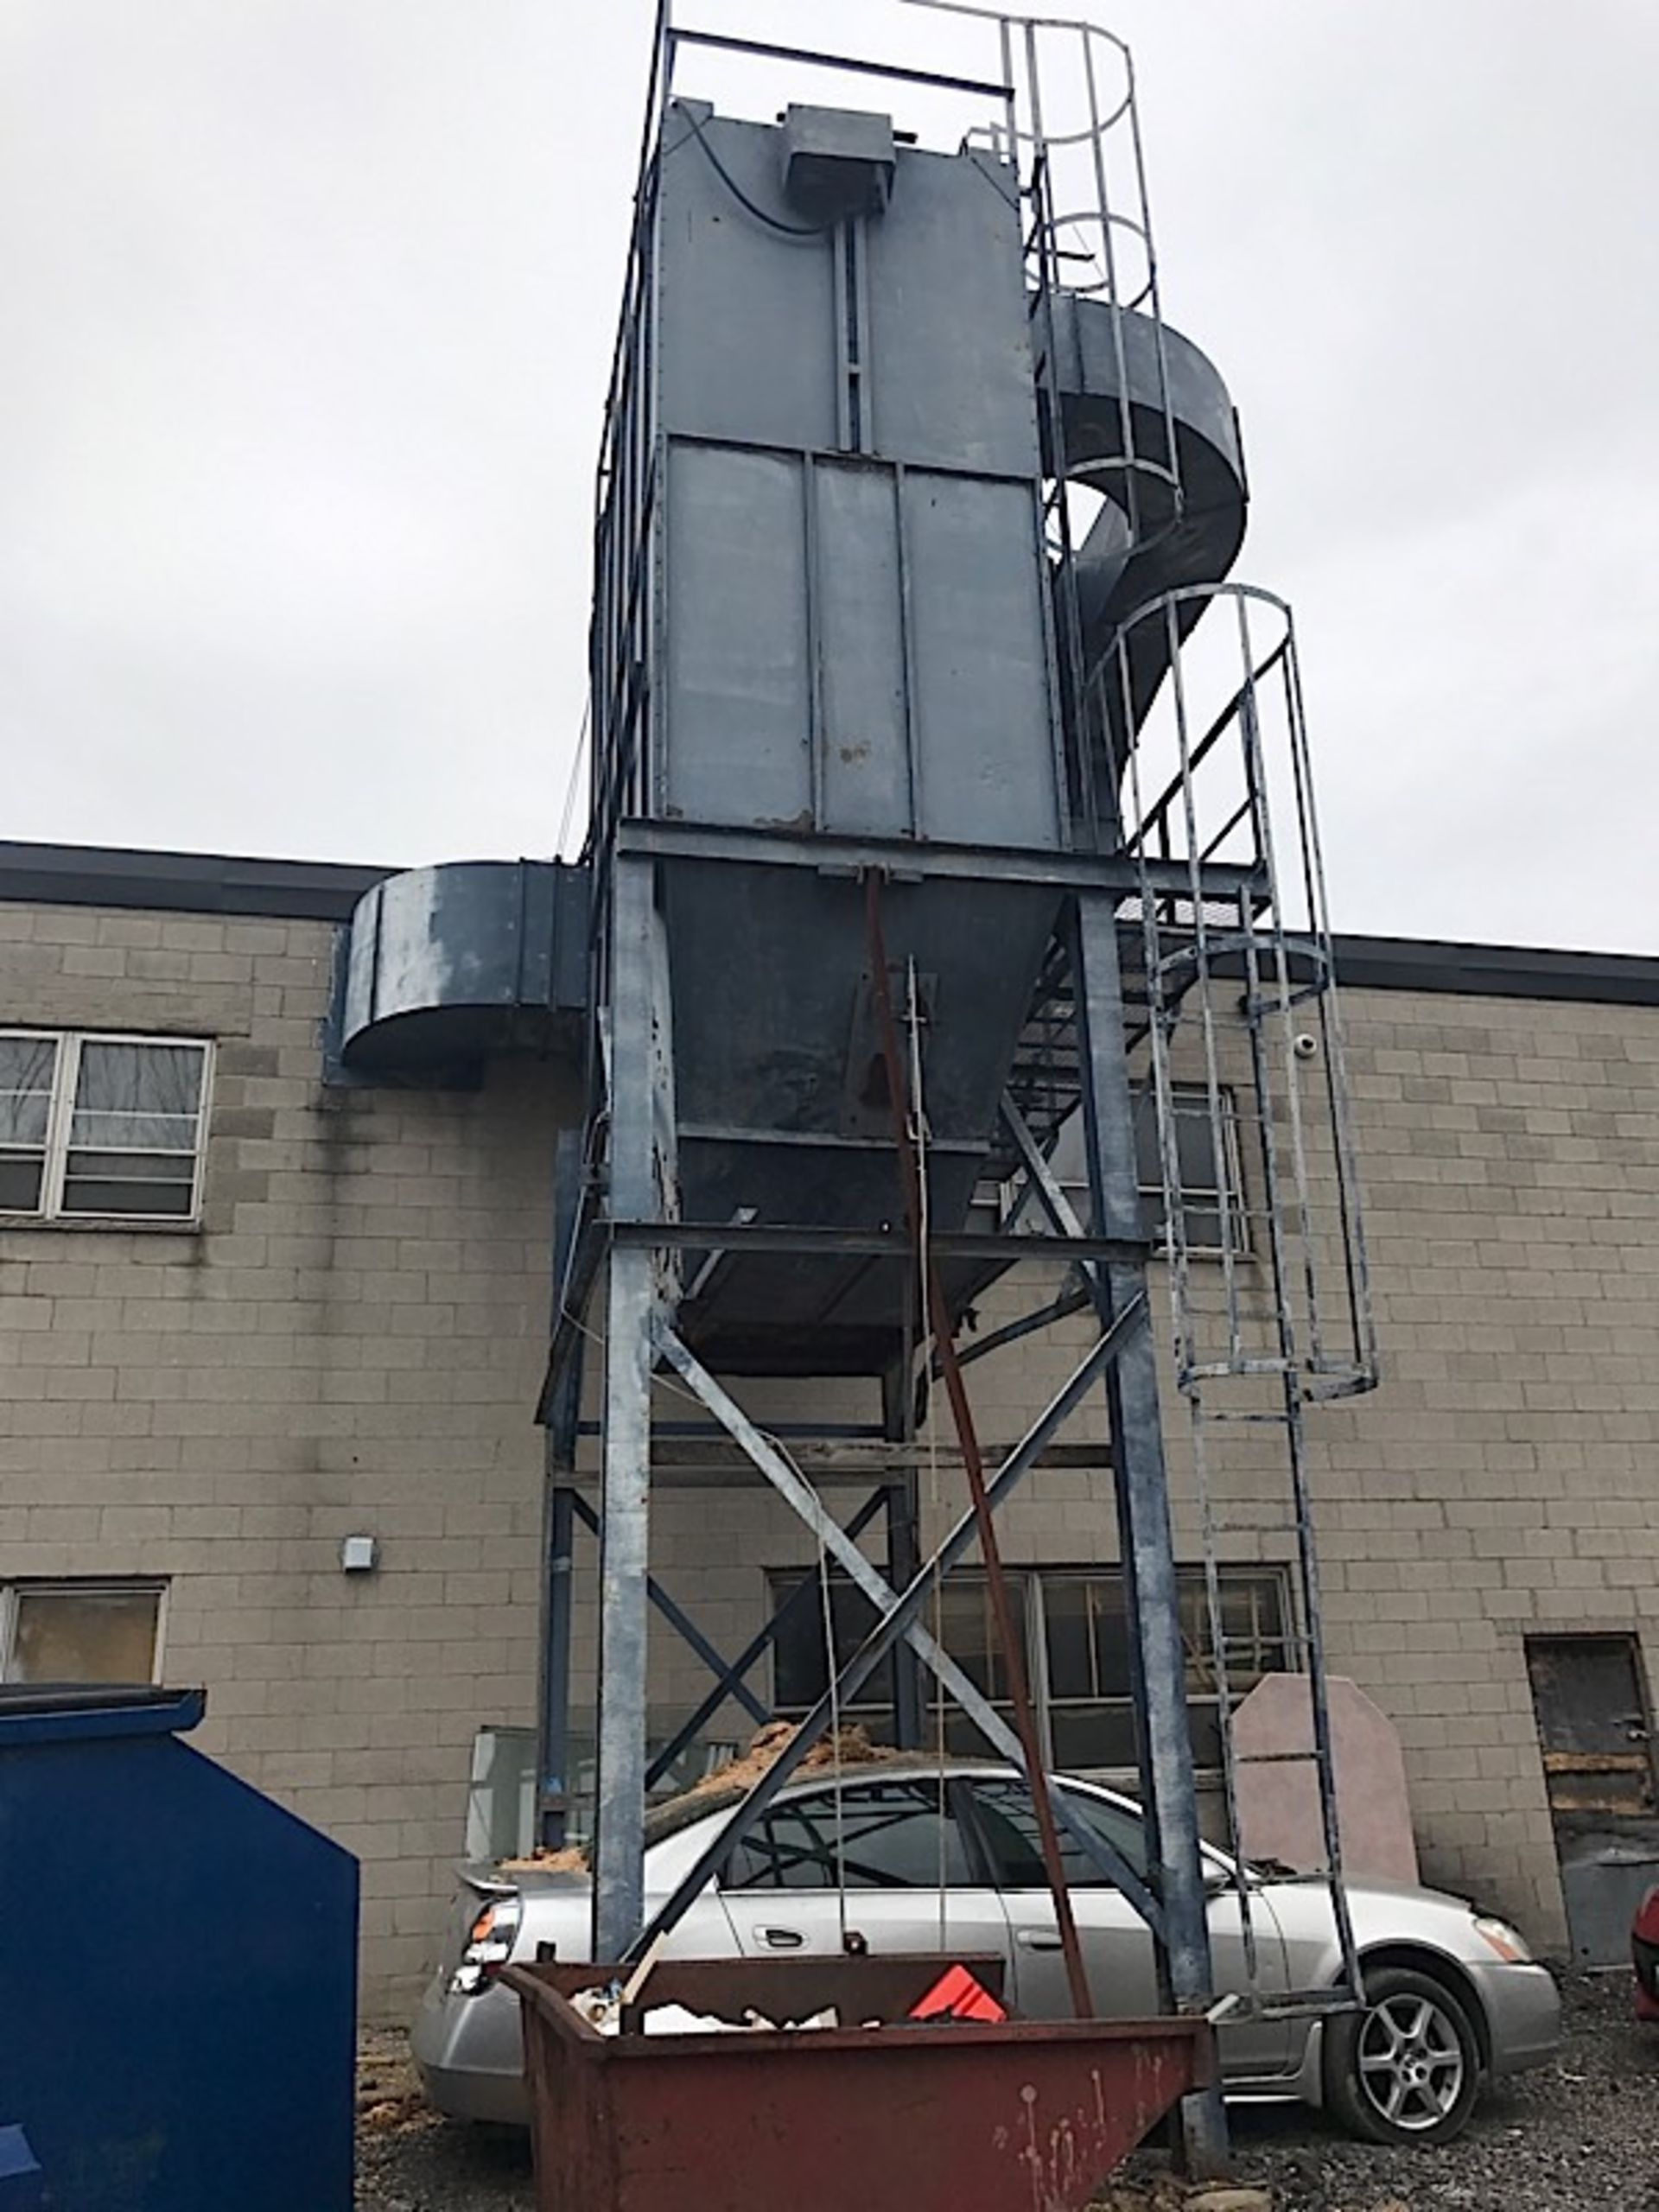 Lot 3 - 40 HP OUTDOOR DUST COLLECTOR W/ STARTER (BUYER RESPONSIBLE FOR PAYING $2,000 FOR REMOVAL)